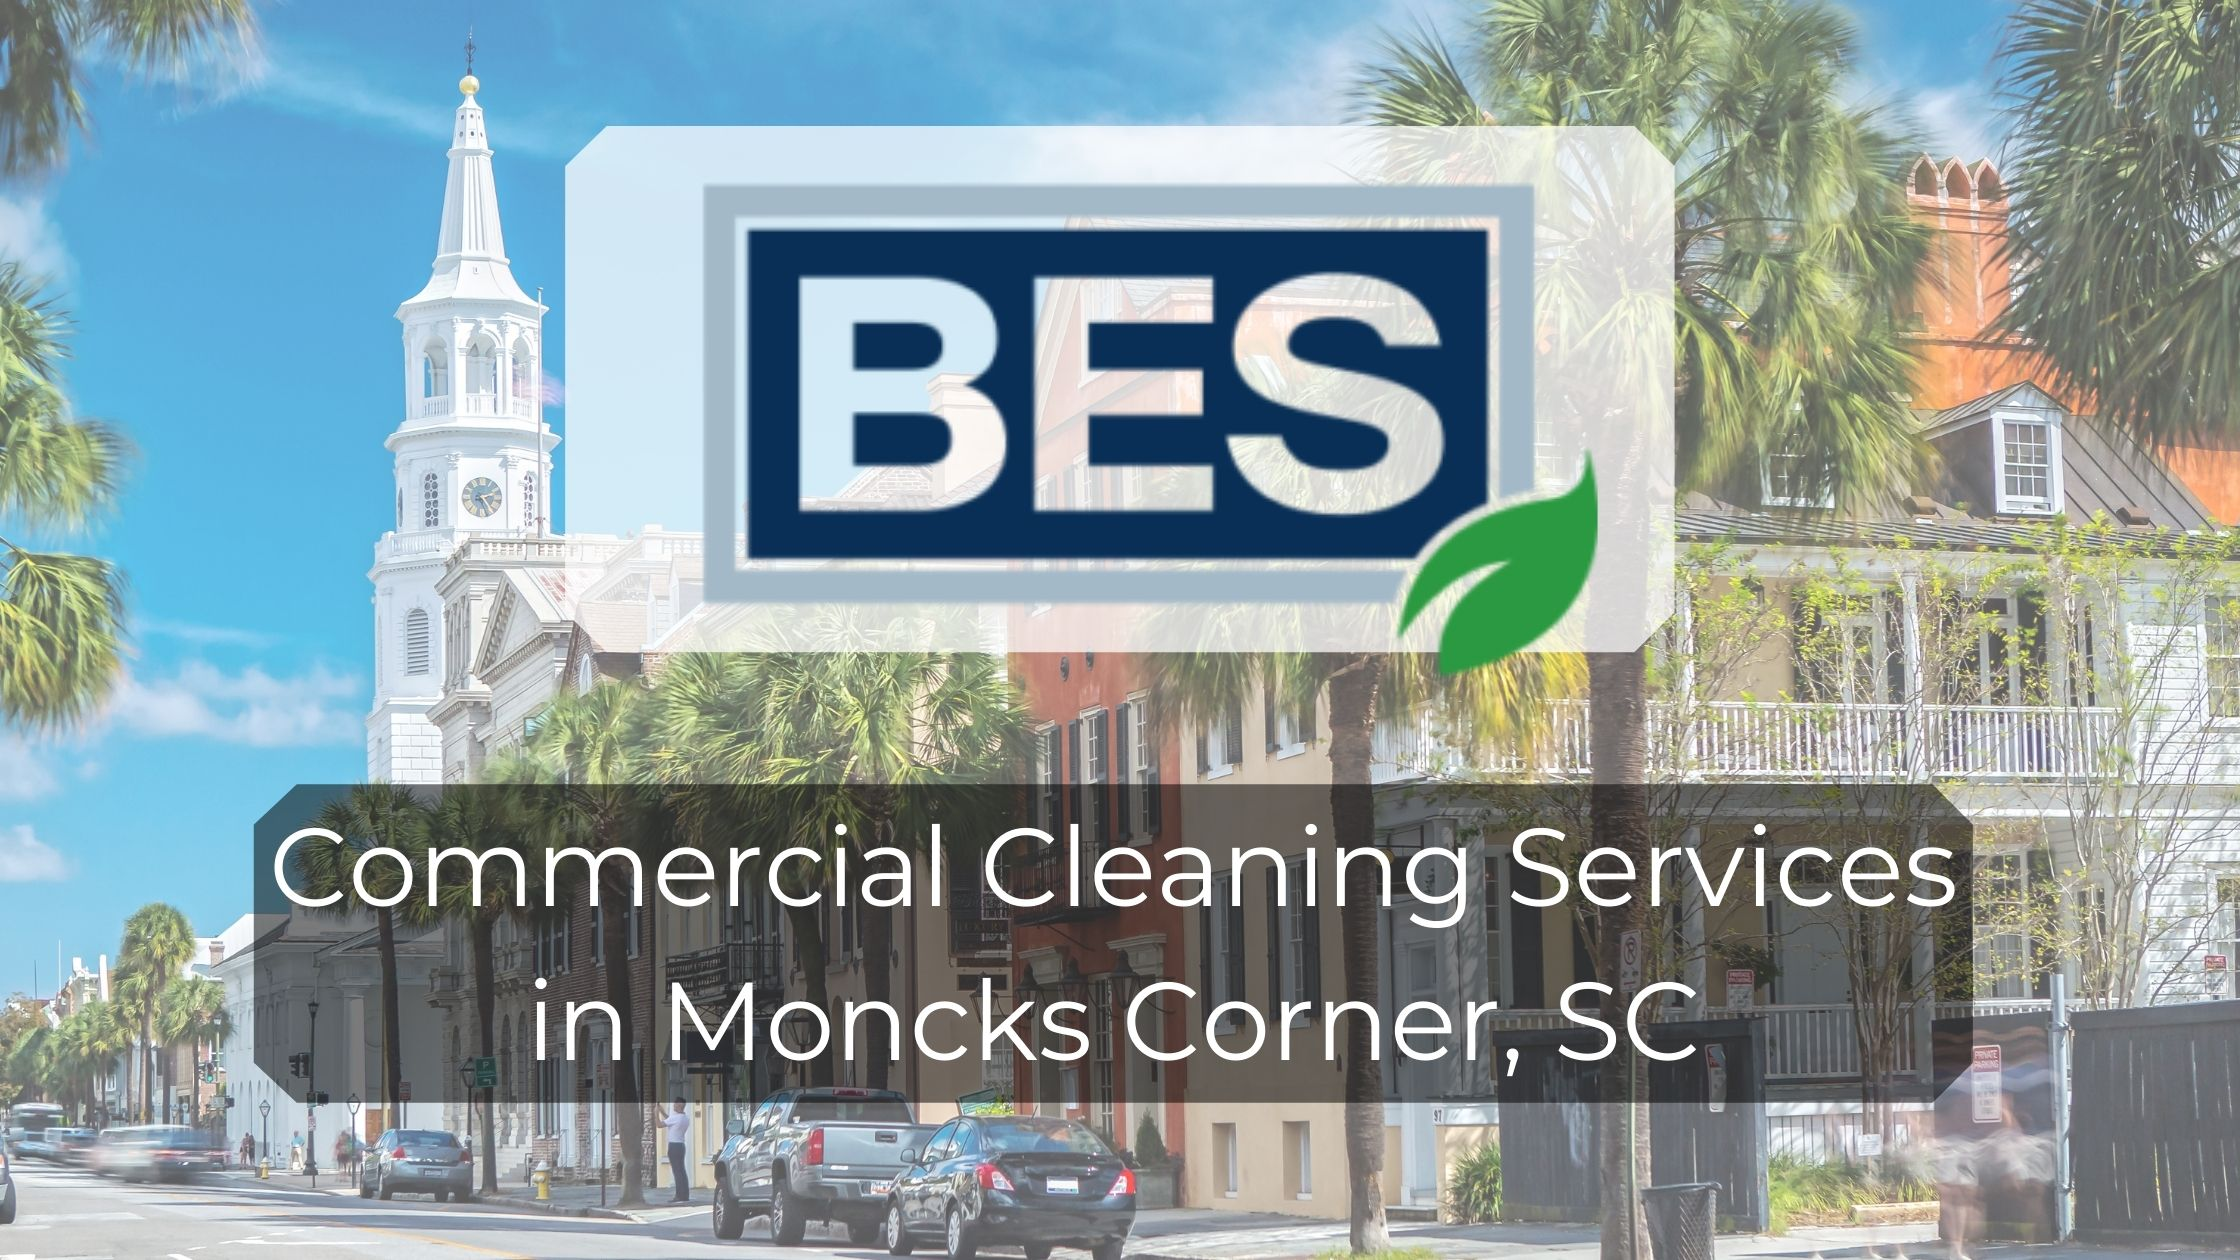 moncks corner commercial cleaning